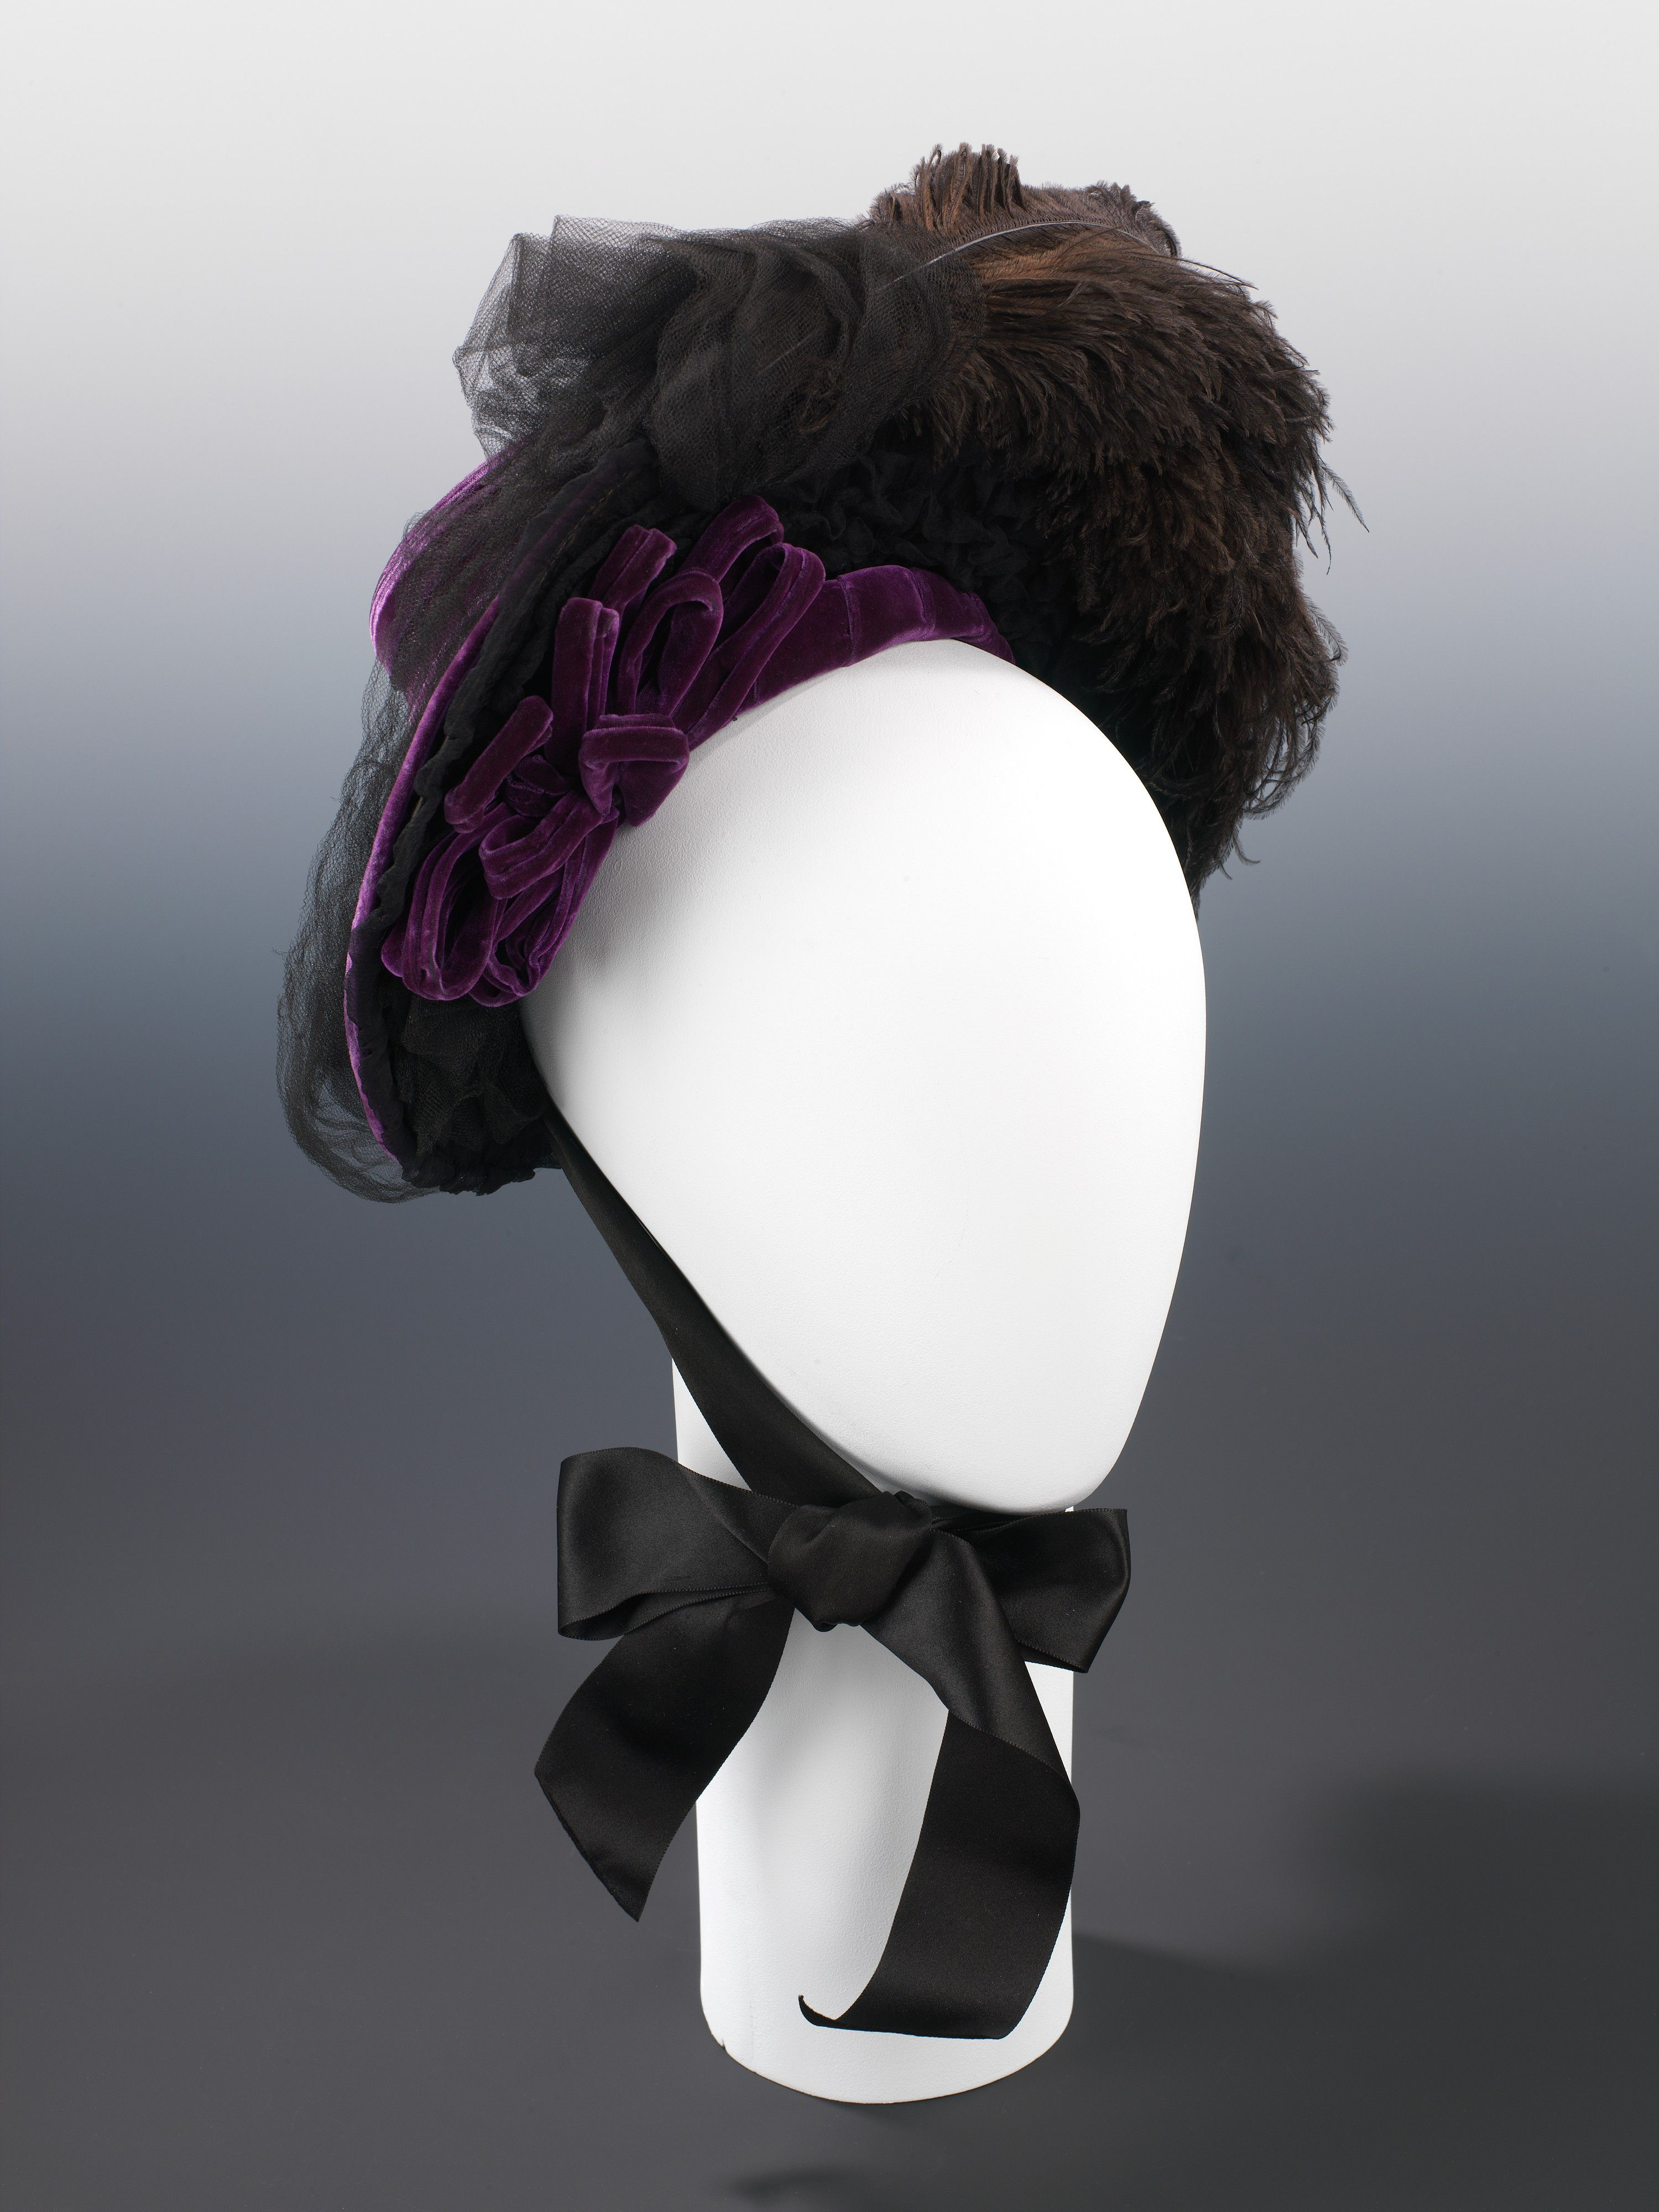 """Half-Mourning Hat, West's (American, founded 1853): ca. 1888, American, silk/feathers. Marking: Label: """"West's/Brooklyn"""""""